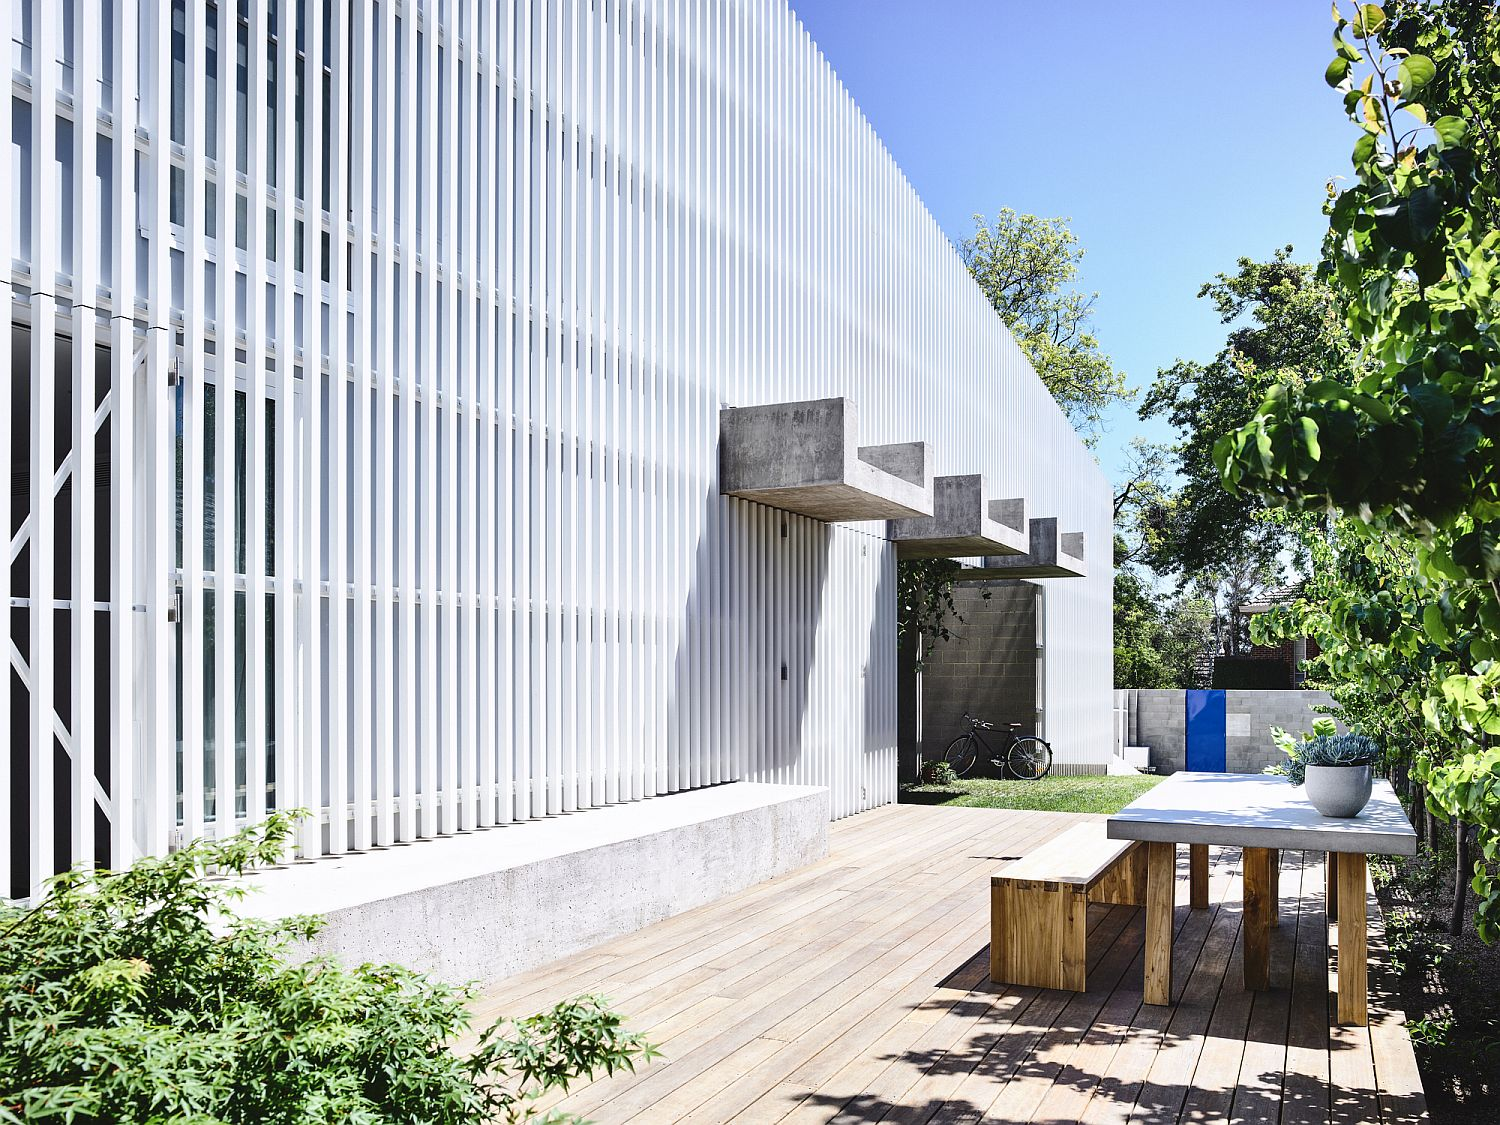 White-metal-grille-shapes-the-street-facade-of-this-contemporary-Aussie-home